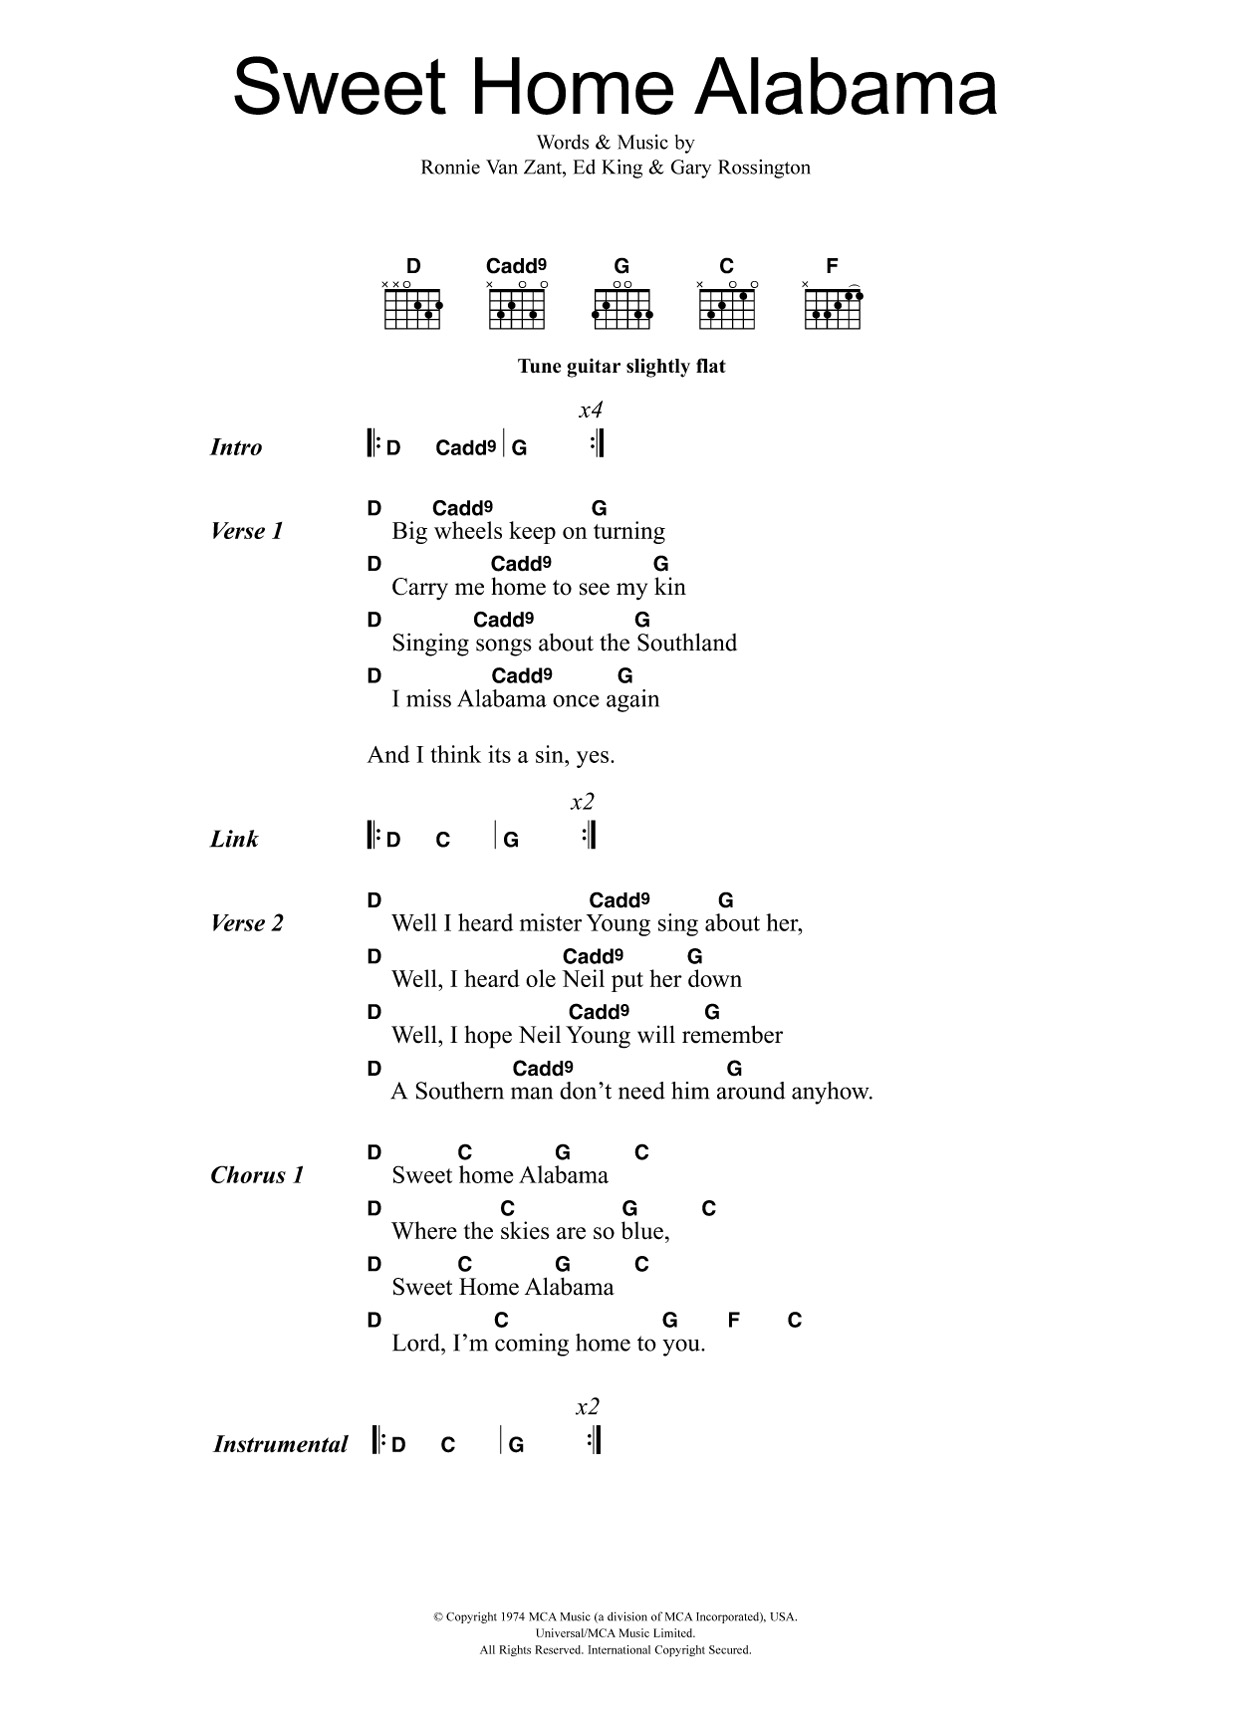 Sweet home alabama (uh, uh, yeah) where the skies are so blue (and you know it's true, uh, yeah) sweet home alabama (uh, uh, uh, yeah) lord i'm comin' home to you … Sweet Home Alabama Sheet Music Lynyrd Skynyrd Guitar Chords Lyrics